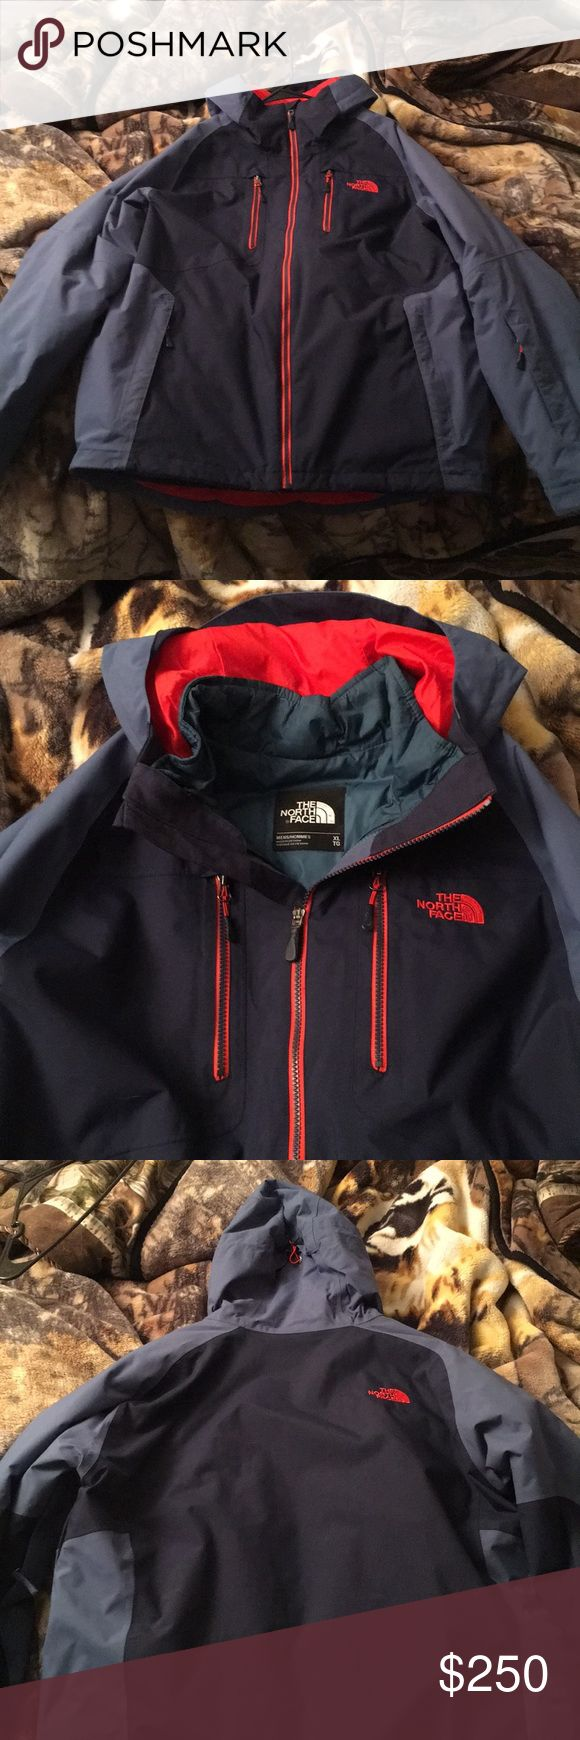 North Face Winter Jacket /w liner It's a blue jacket with 2 different colors of blue and a orange north face logo. It has 4 pockets on the front of the jacket. Has another pocket on left arm and that has a cloth attached inside the pocket for wiping your goggles,glasses or even your phone. Has zipper under both arms for air vents if you get hot. There are no holes or rips or tears in the jacket. This is the best jacket iv ever owned!! Only reason I'm selling it is because I just got a new…